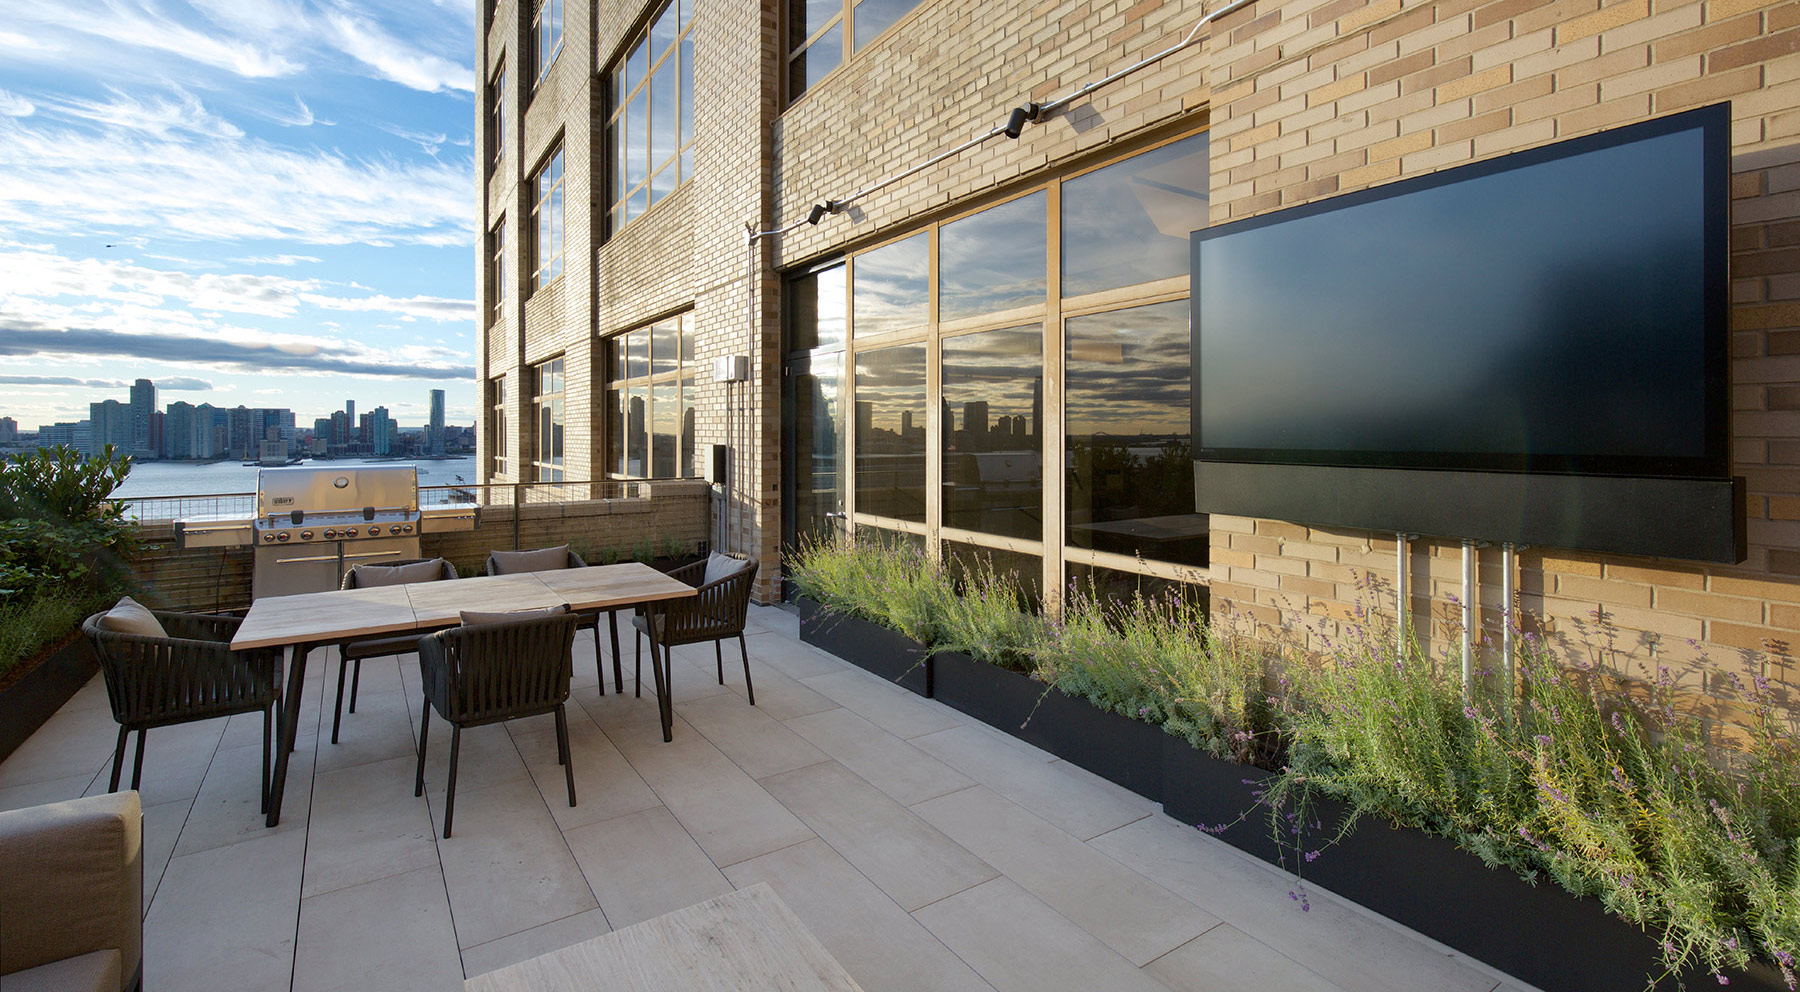 Outdoor space at 345 Hudson Street